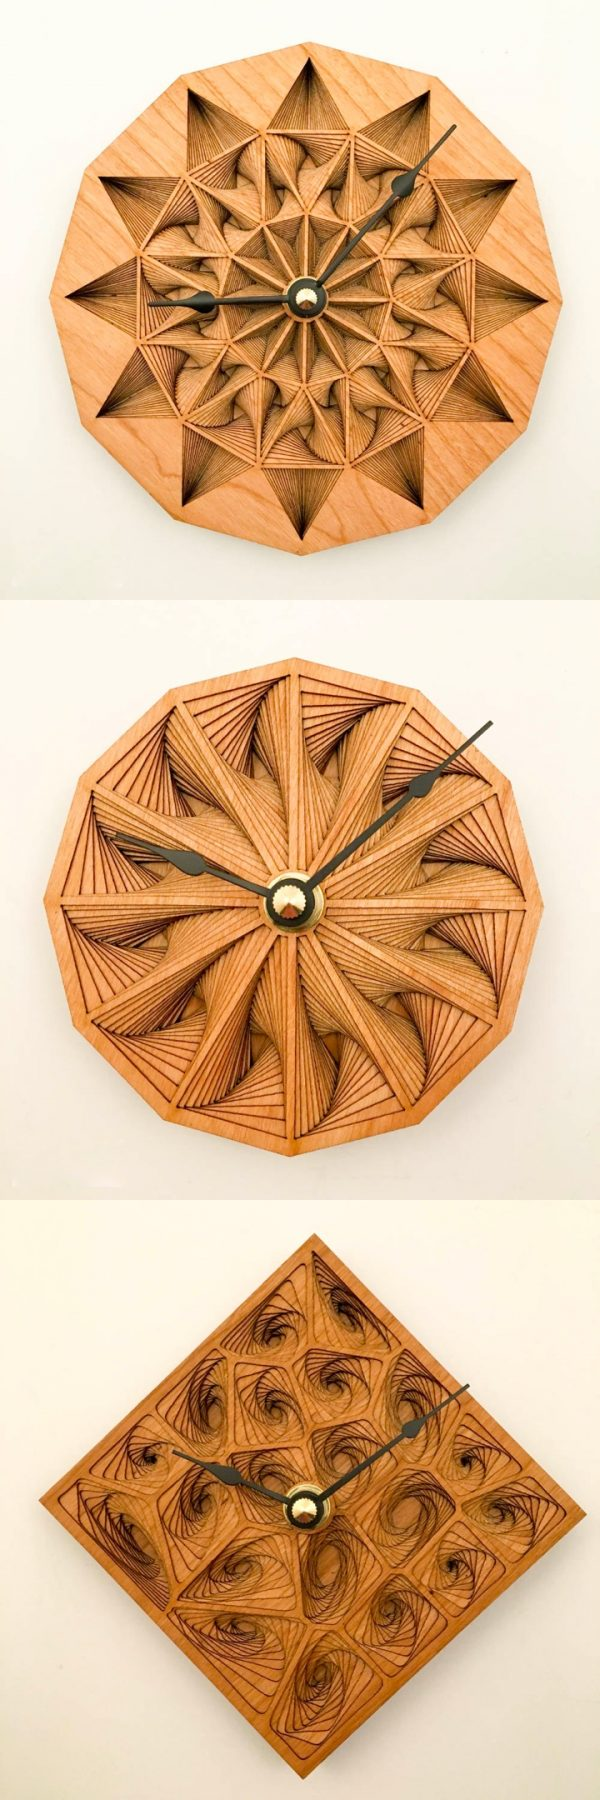 34 wooden wall clocks to warm up your interior amipublicfo Gallery